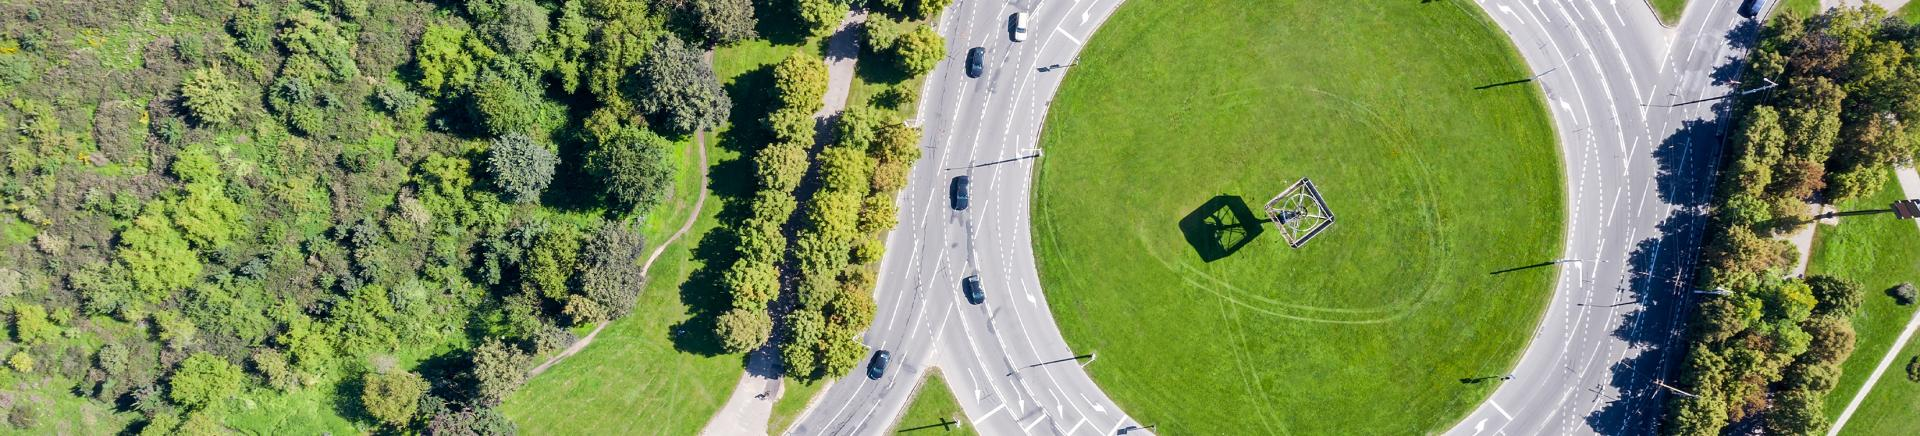 Modern Roundabouts - March 05, 2020